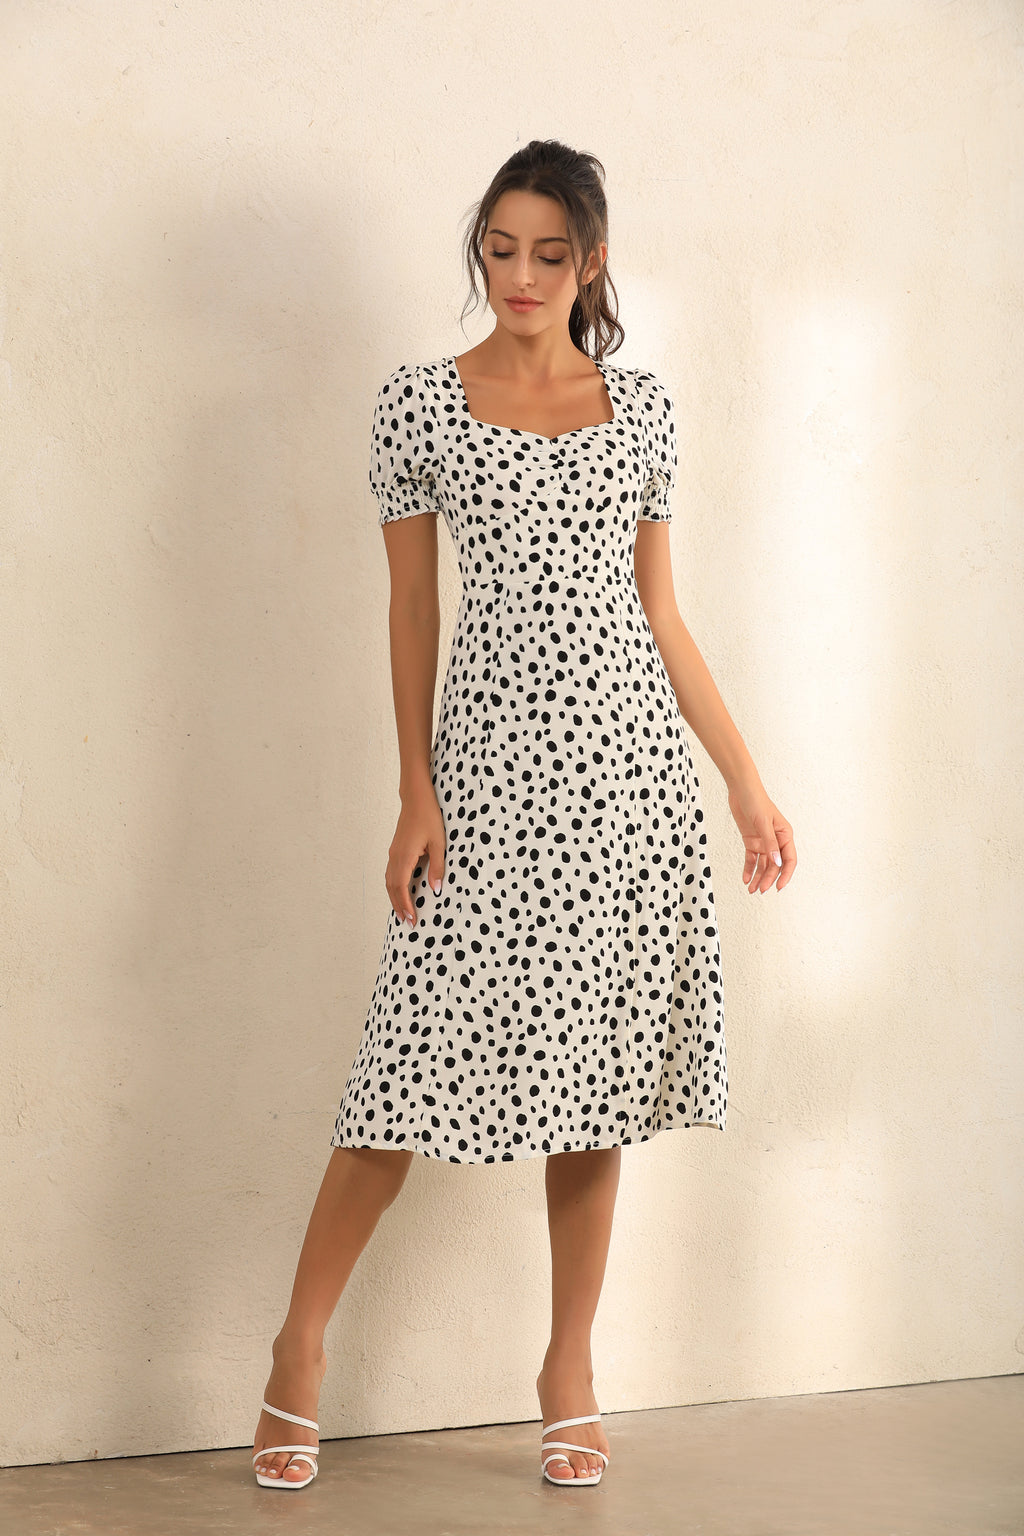 Dalmatian Spot Print Puff Shoulder Split Midi Dress In White - Miss Floral